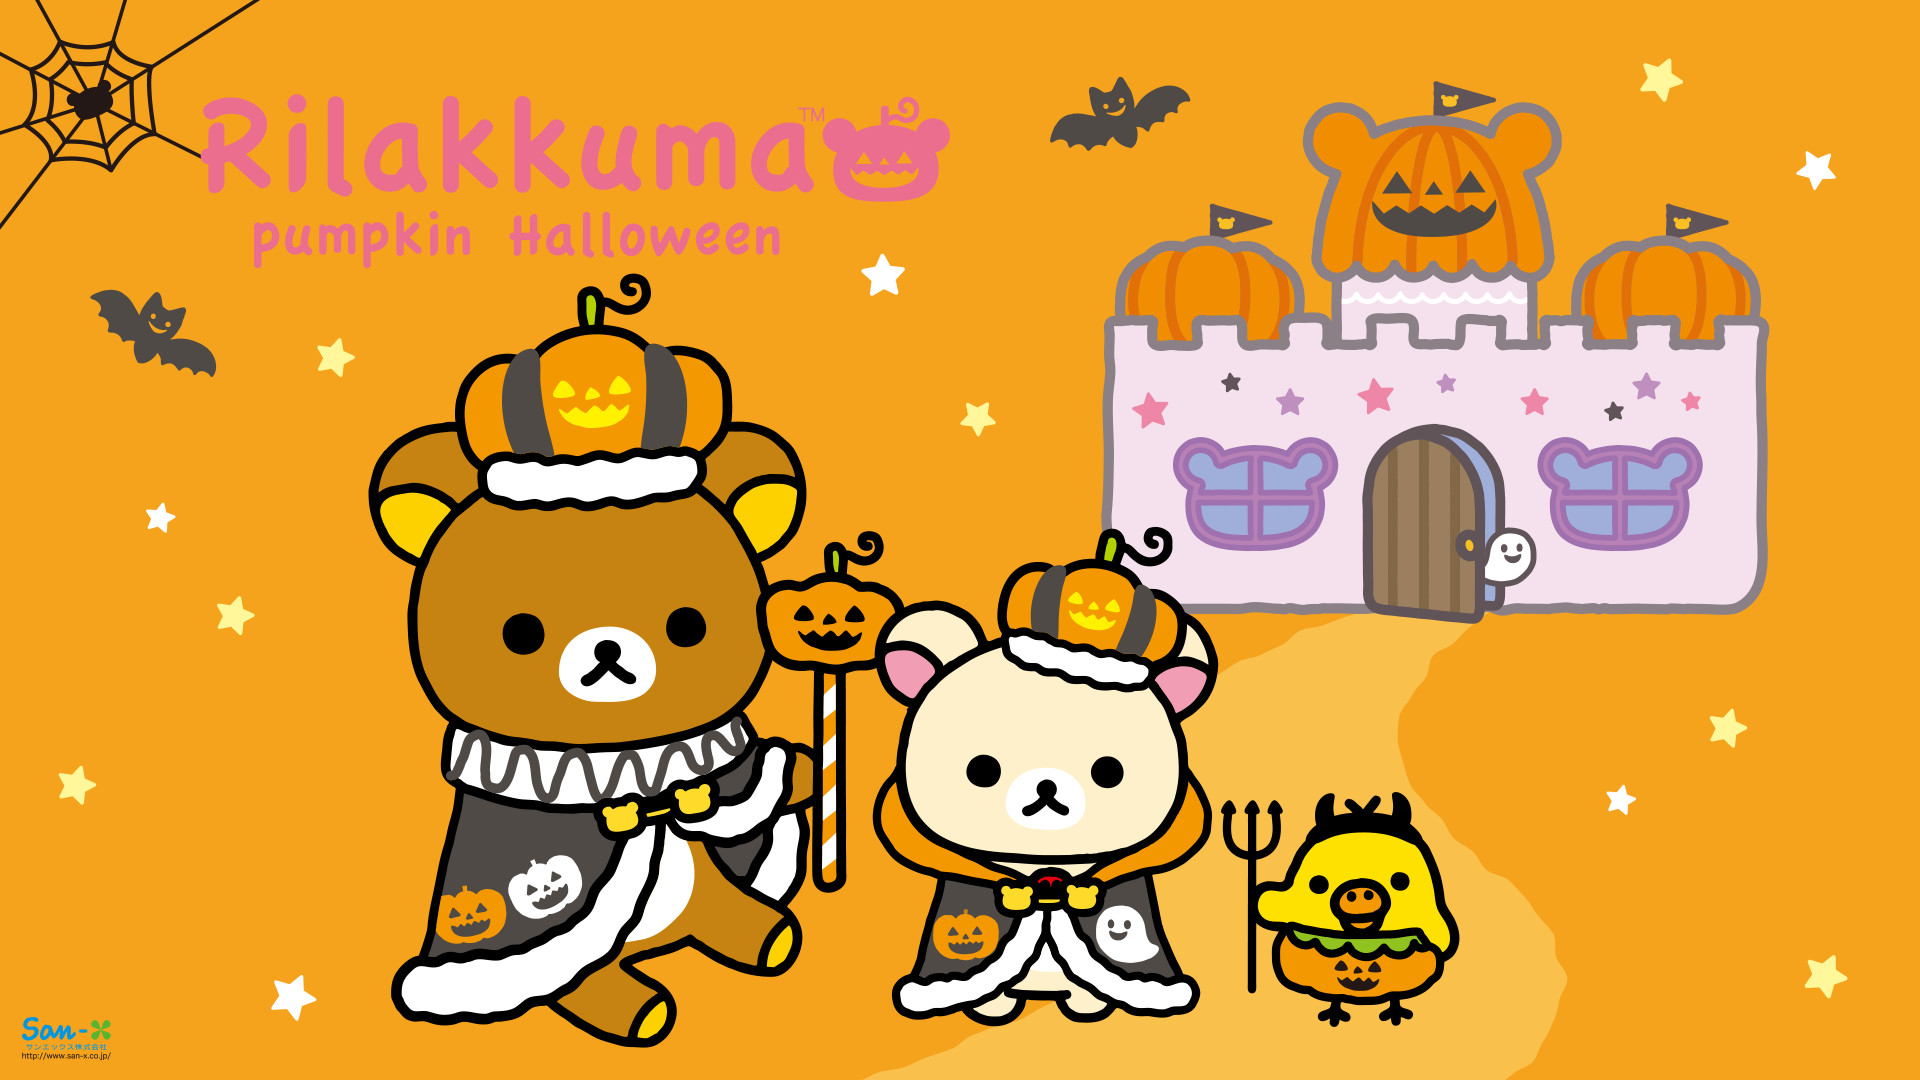 1920x1080 83_1080_1920.png 1,920×1,080 pixels | BG/Wallpaper/Pattern | Pinterest | Rilakkuma  wallpaper, Rilakkuma and Wallpaper